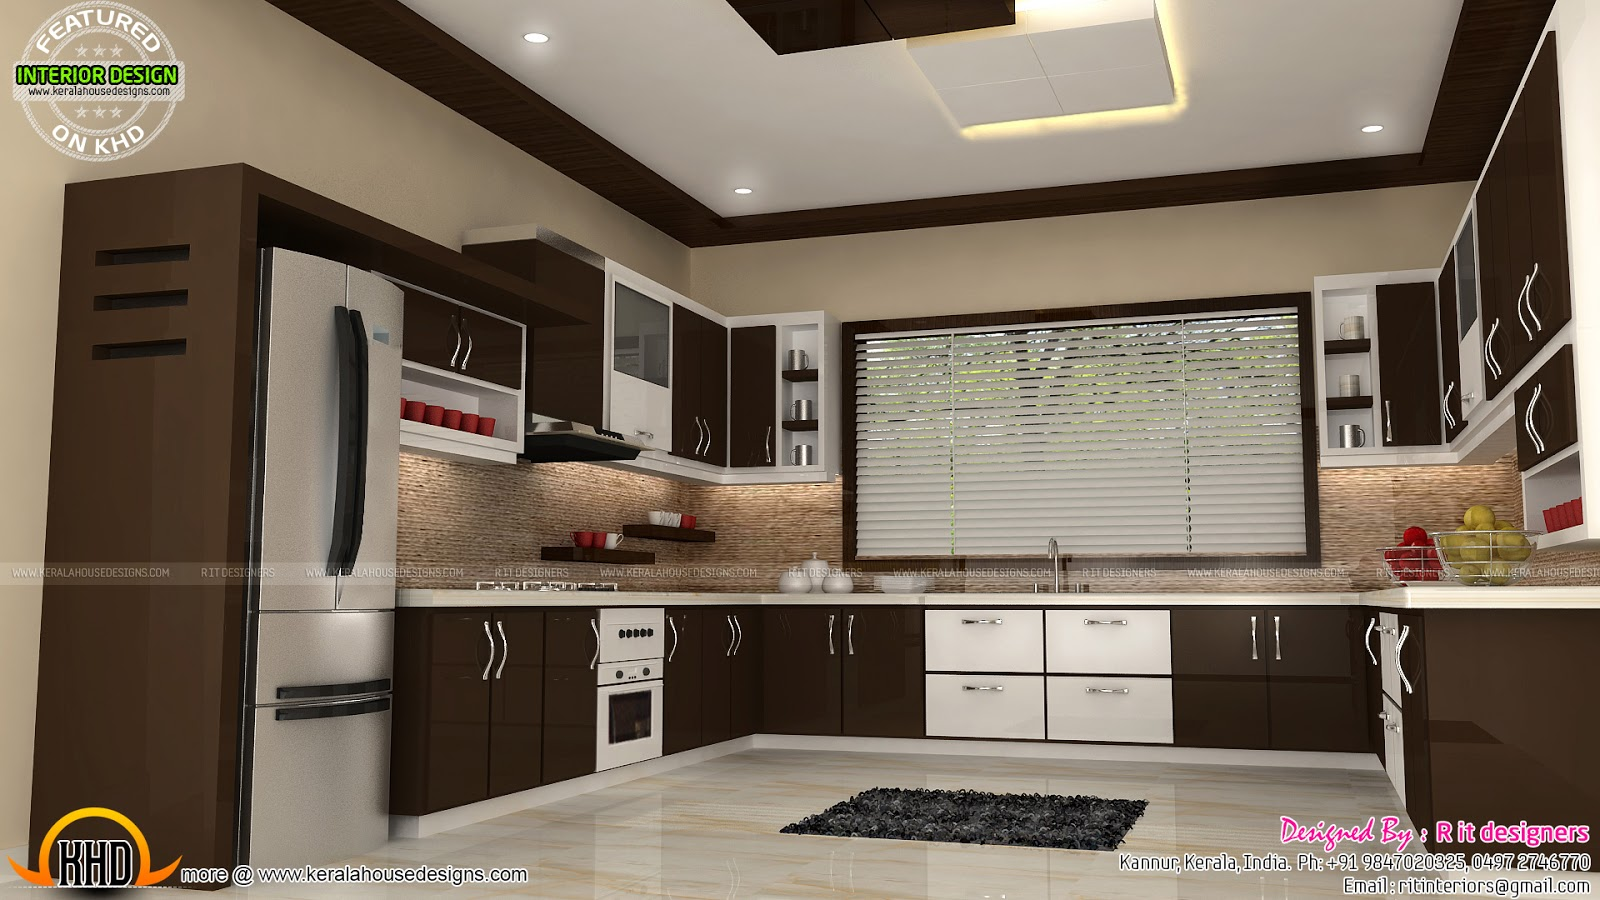 Design House Interiors Kerala Home Design And Floor Plans Interiors Of Bedrooms